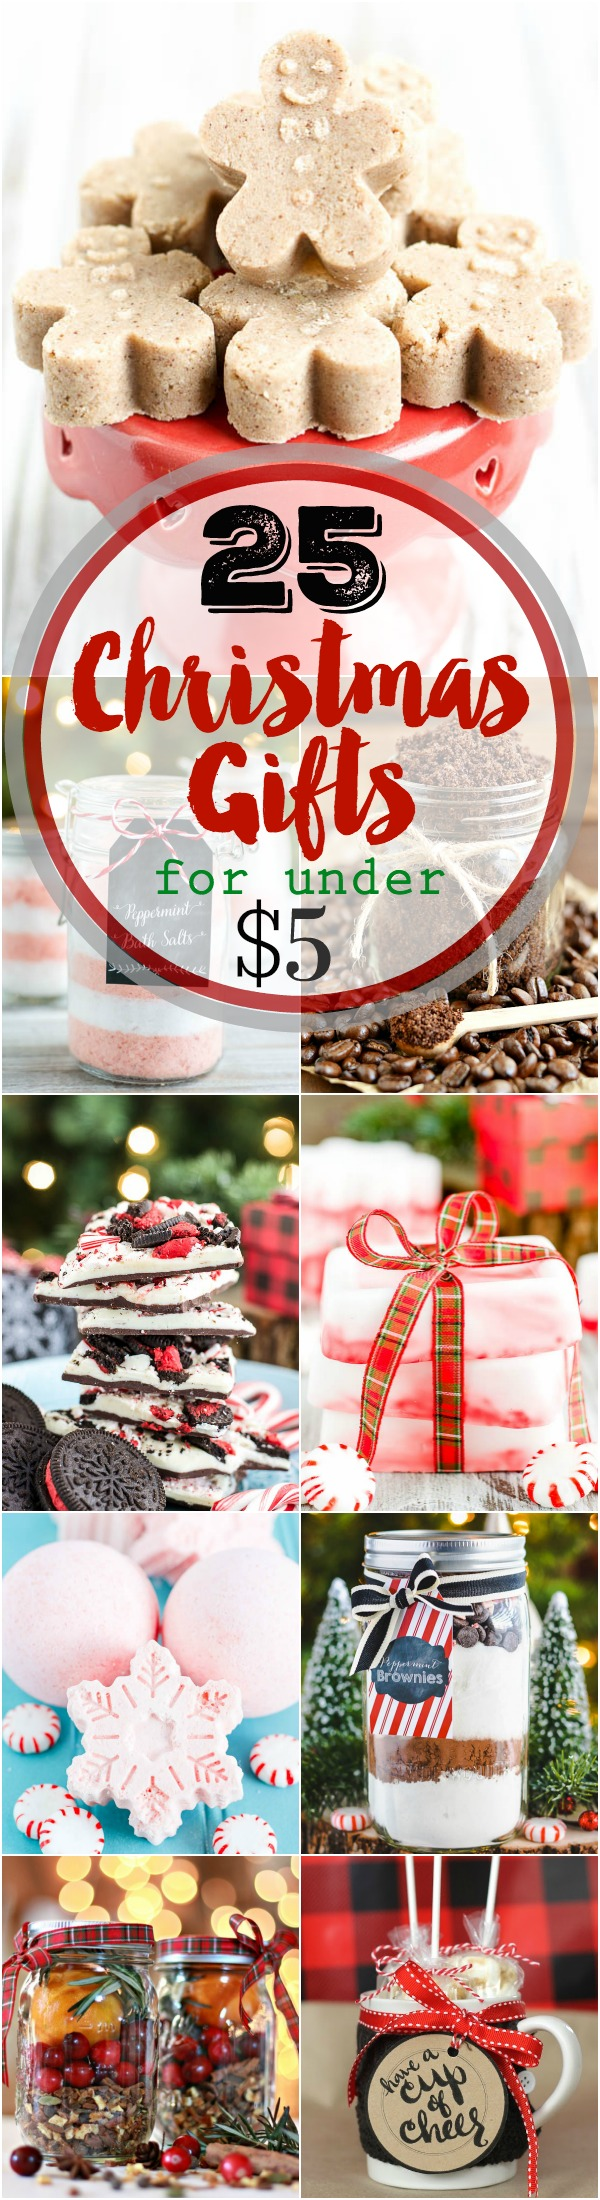 25 handmade christmas gifts under 5 easy handmade gifts to give for christmas peppermint - Christmas Gifts Under 5 Dollars